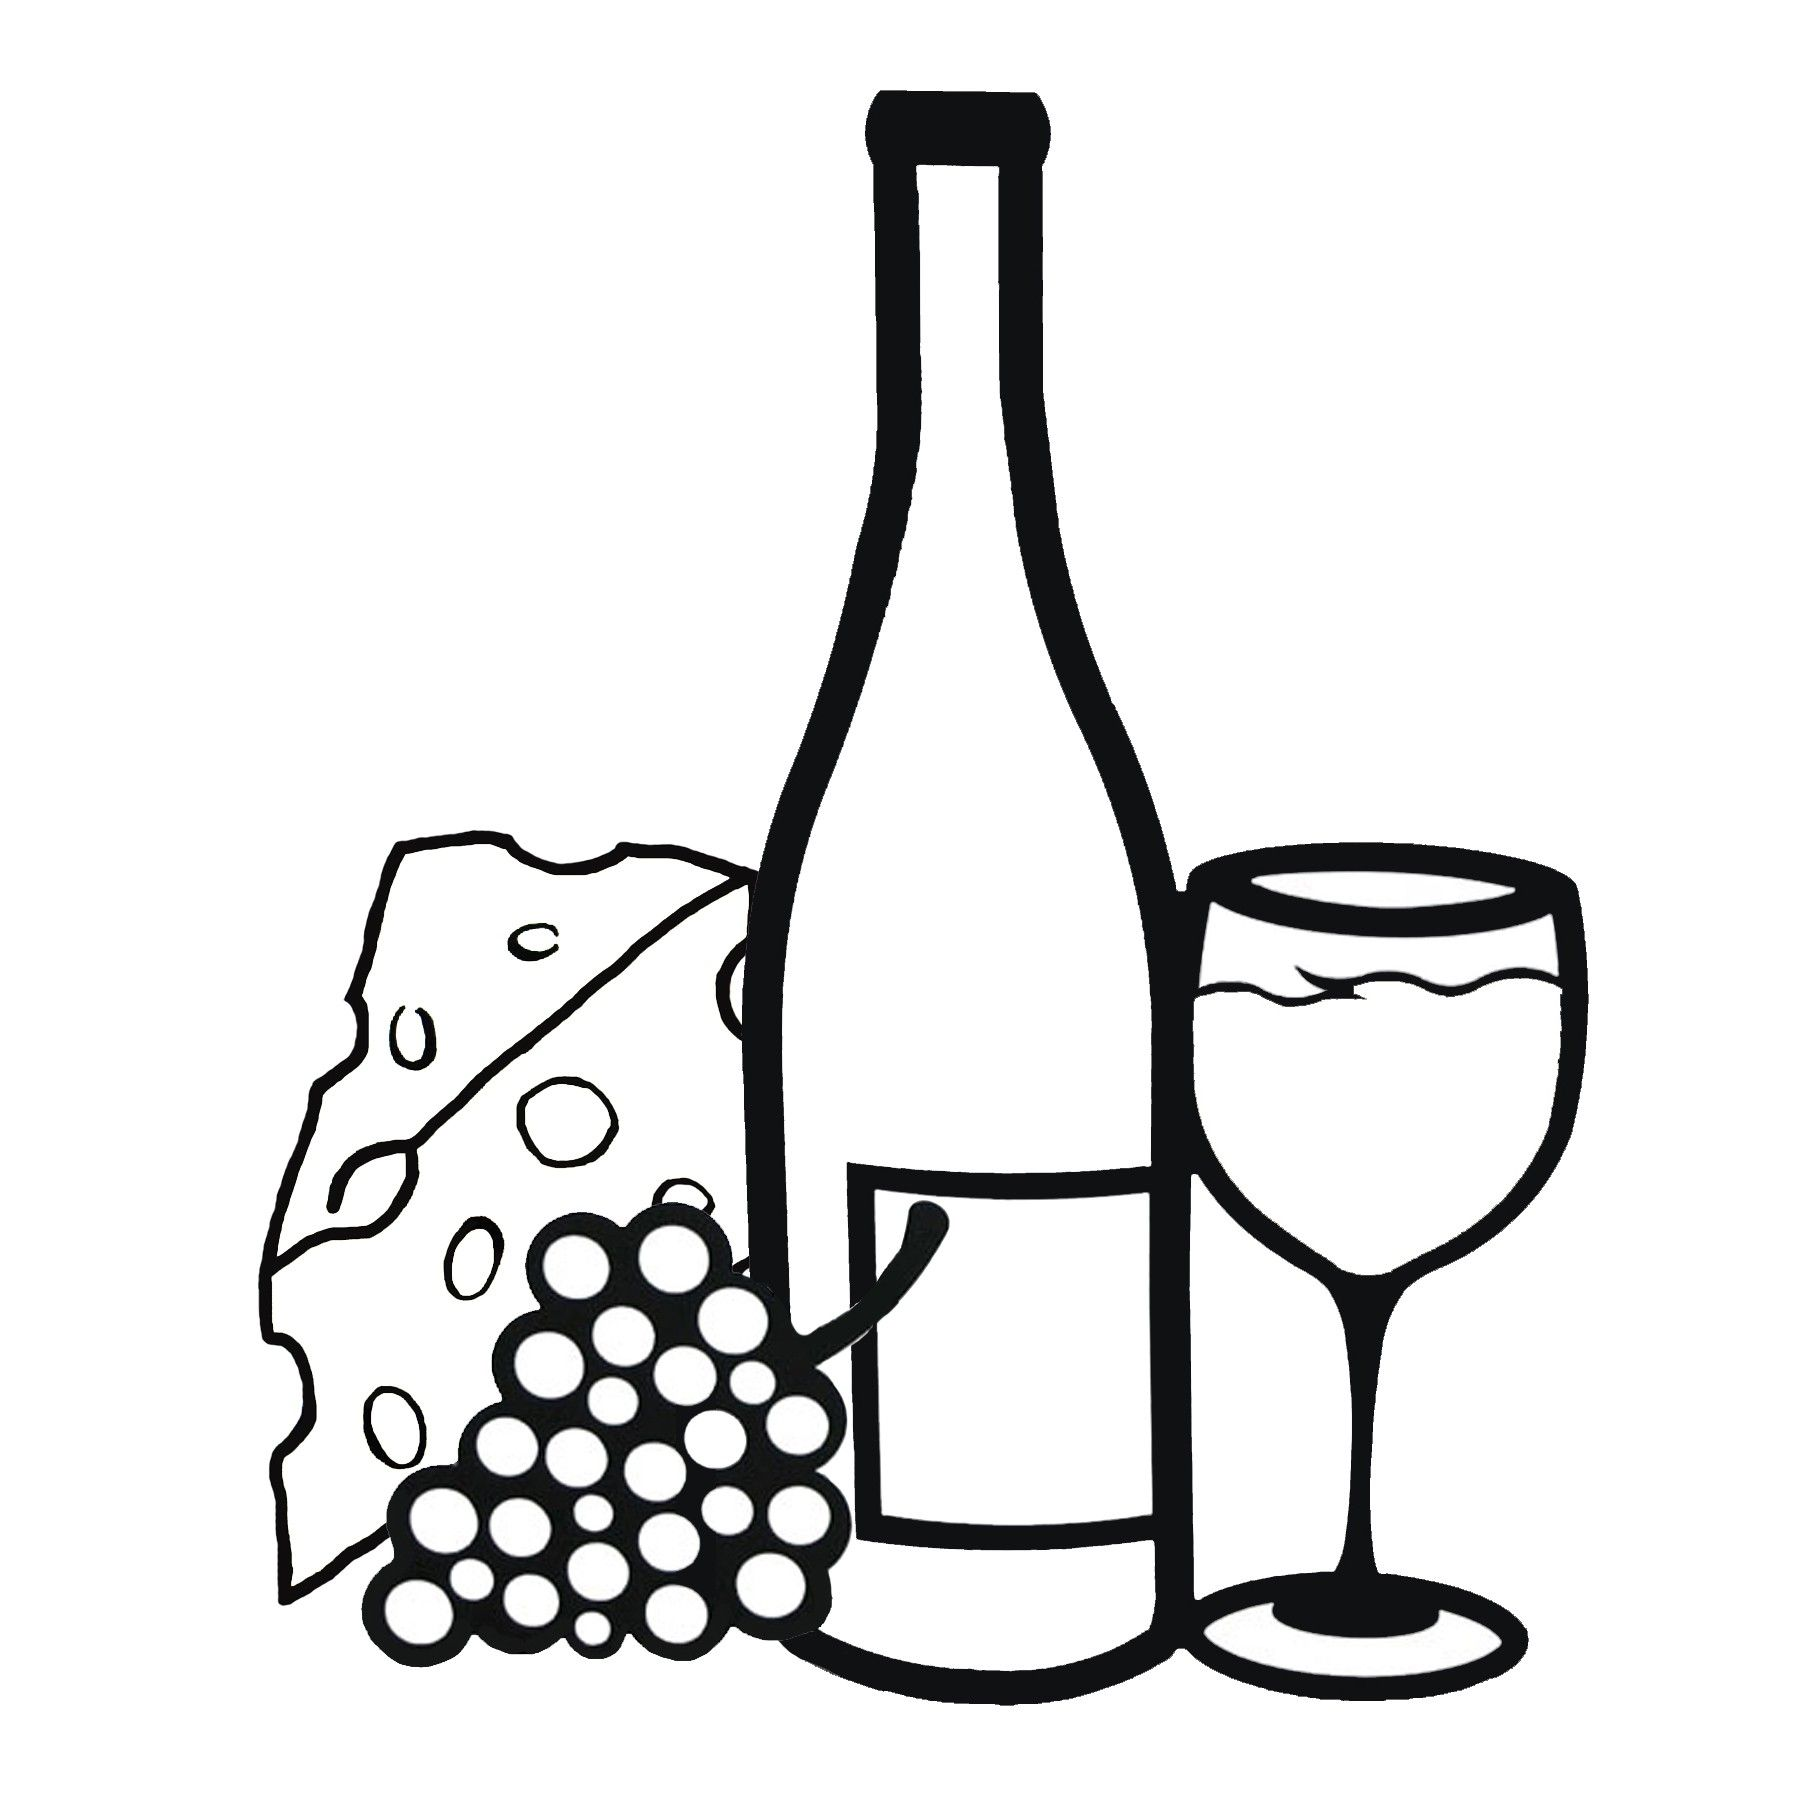 1800x1800 images for gt wine glass and grapes clipart clip art wine glass